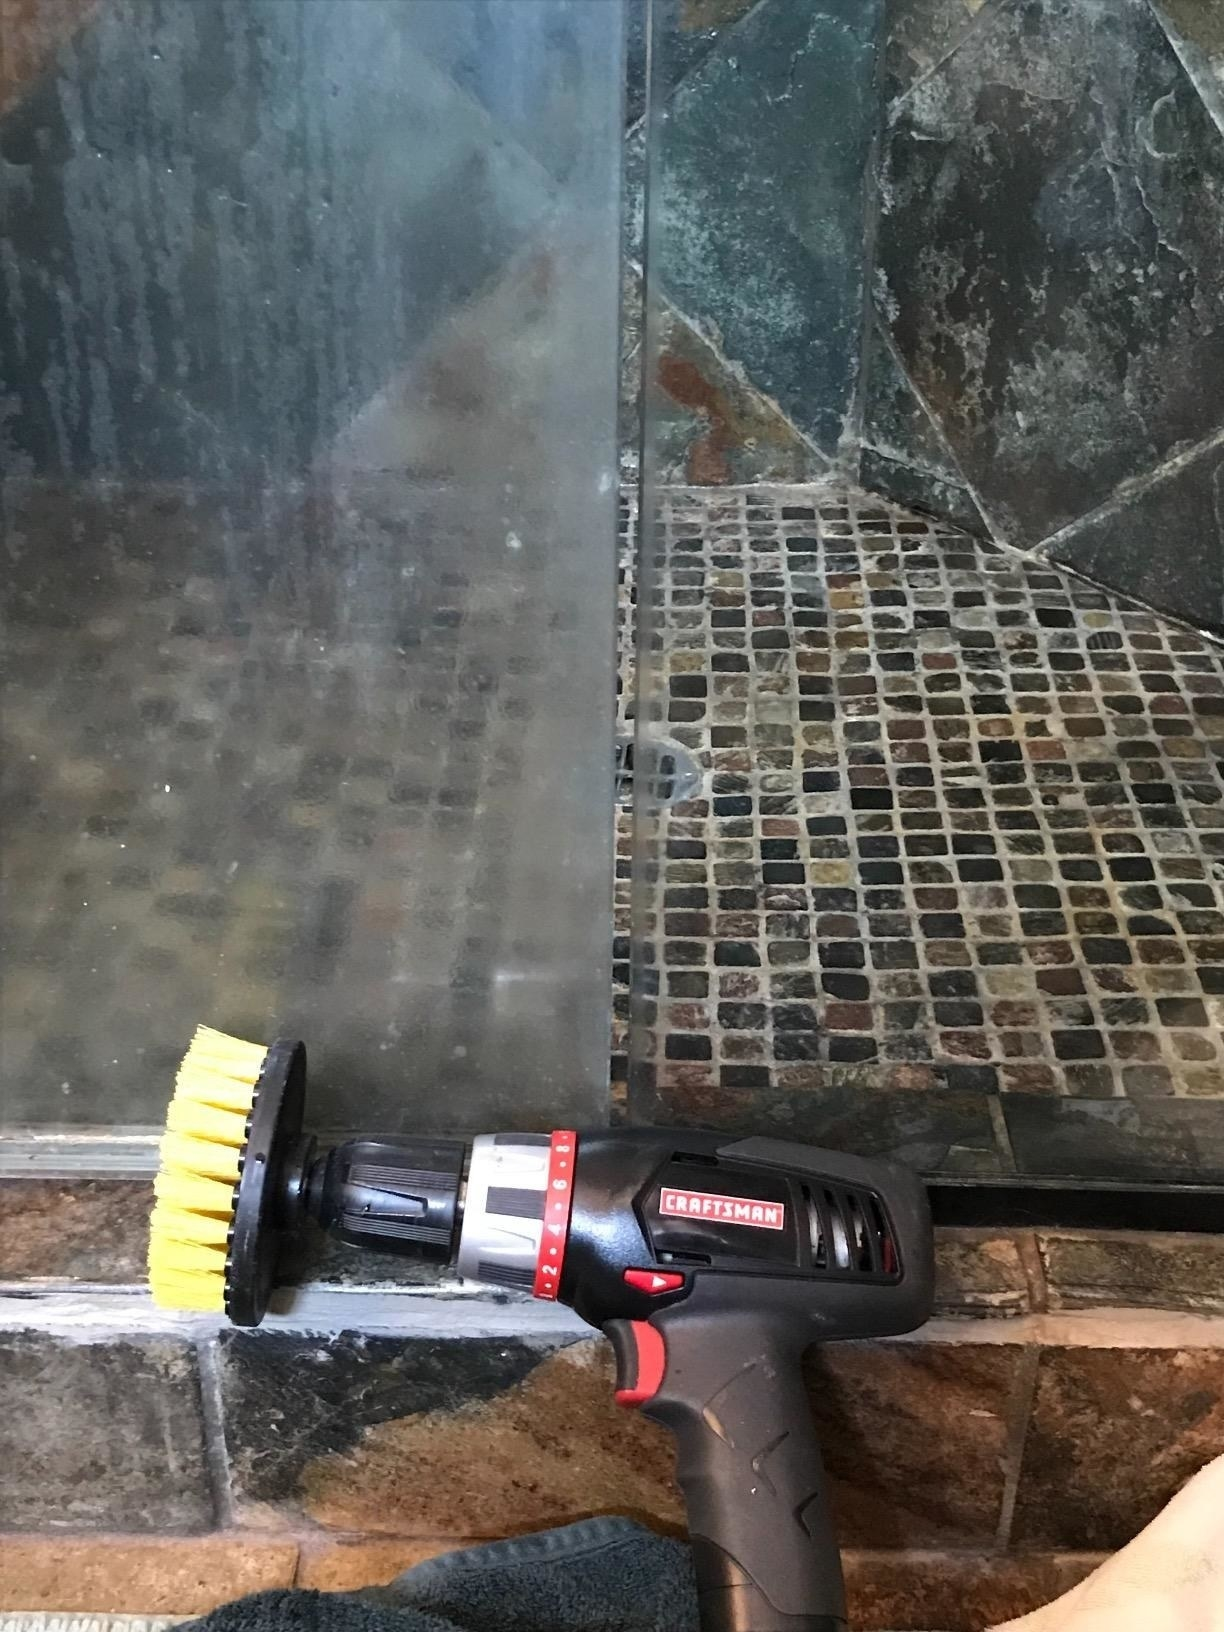 A drill with the three-inch brush attached sitting next to one panel of a shower door that's dirty and caked with buildup and soap scum; and another panel that's completely clean and transparent